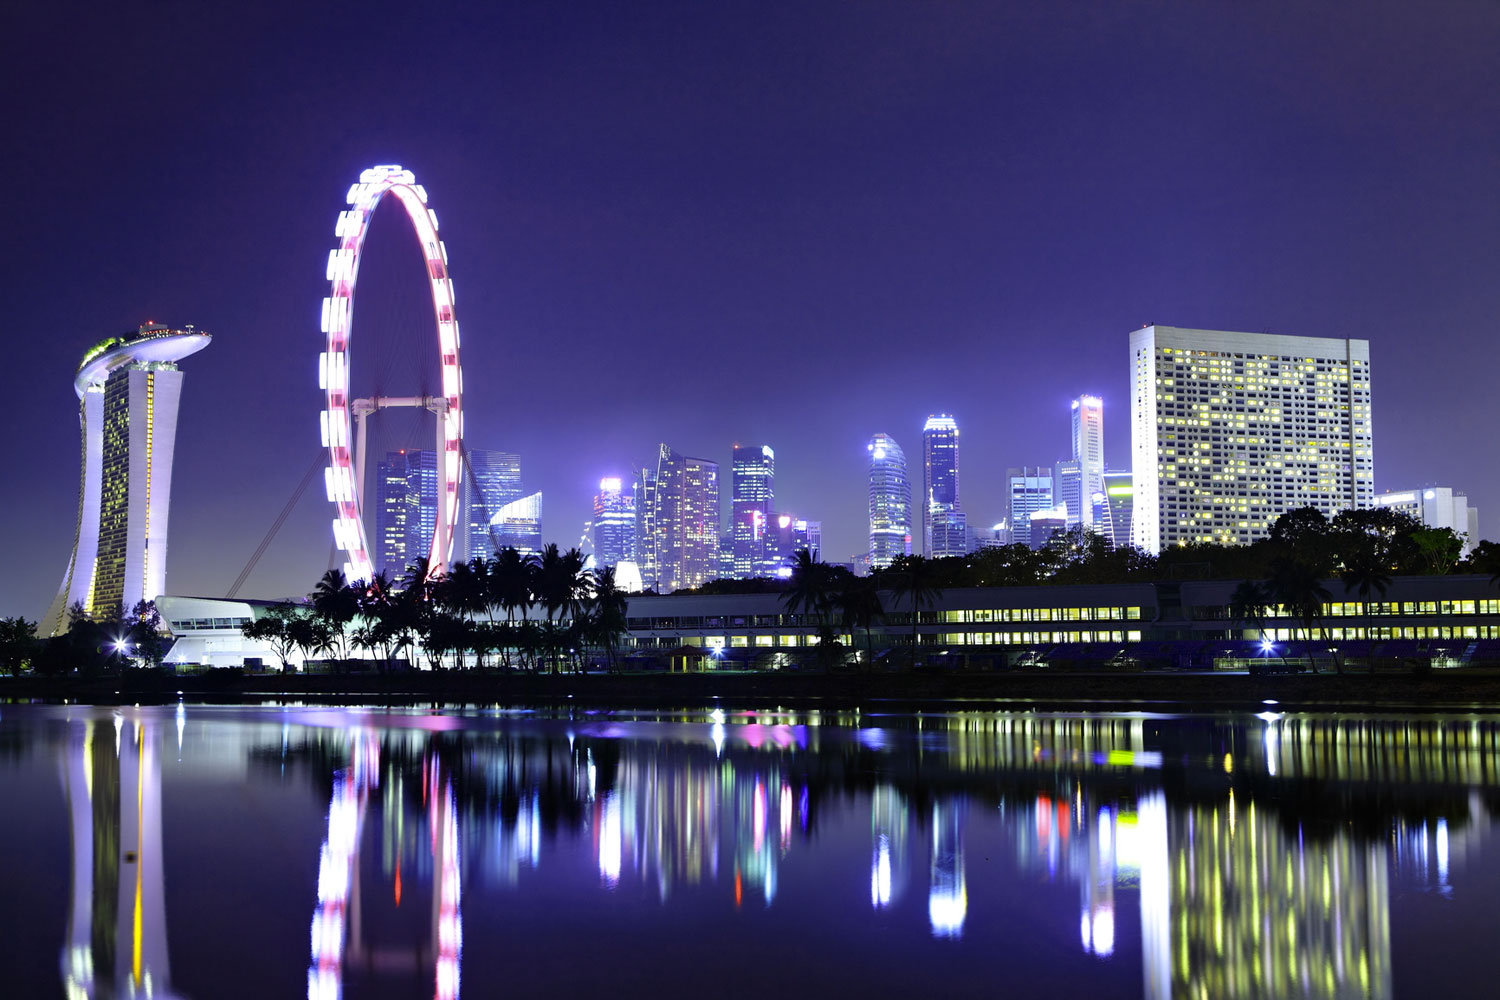 singapore-city-at-night-m